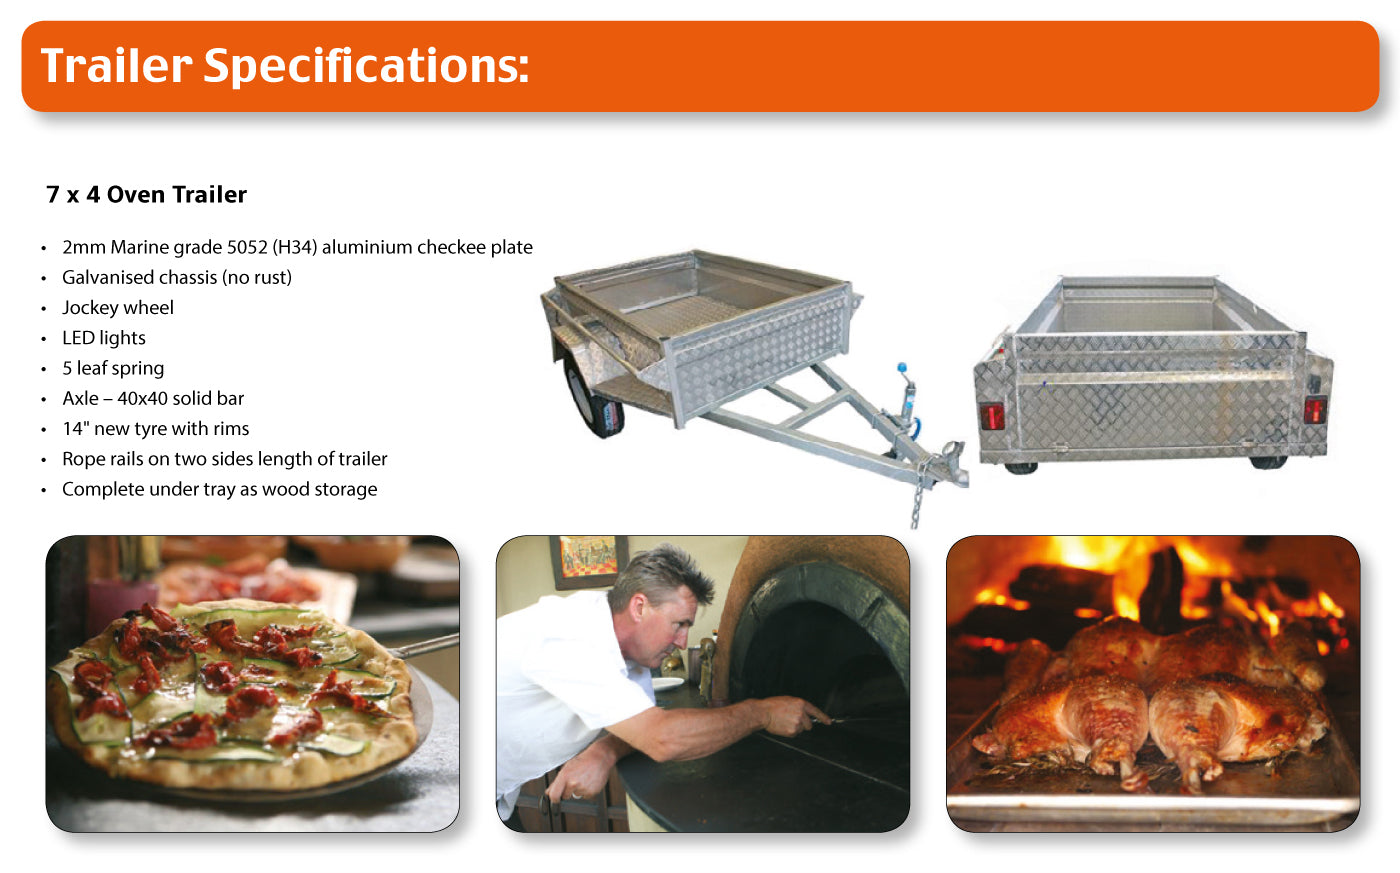 Trailer Pizza Oven: Trailer Specifications